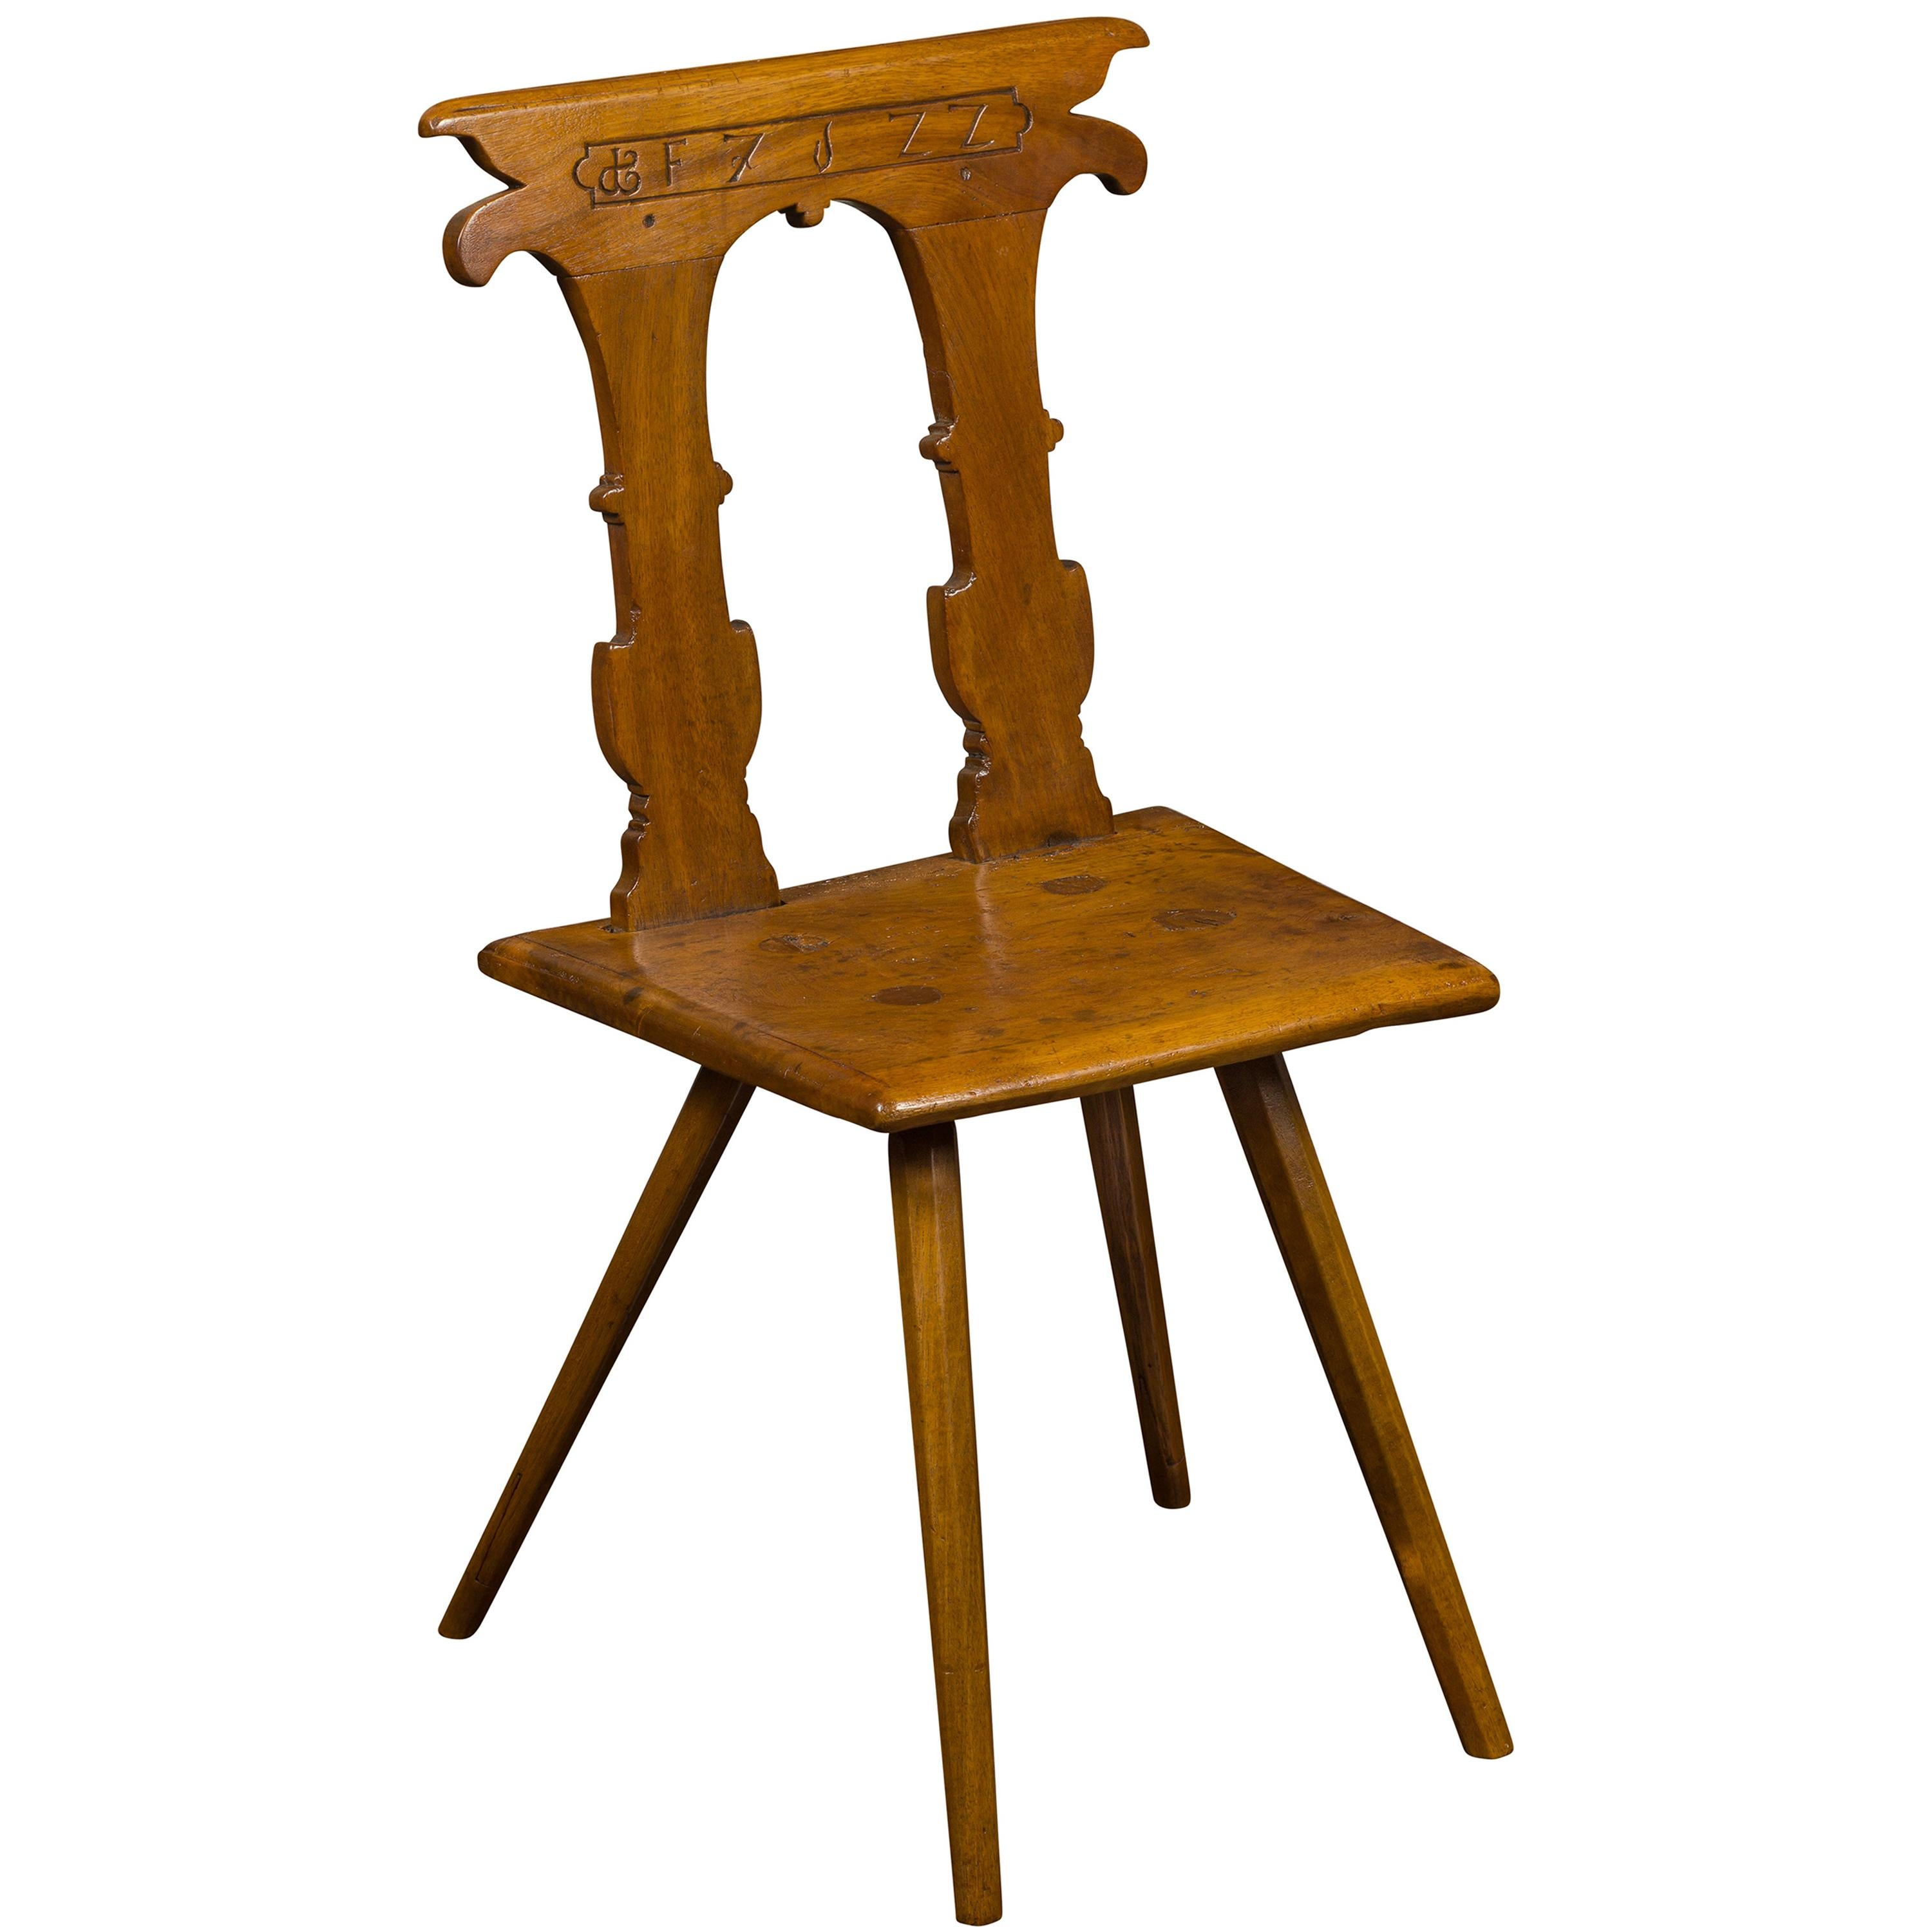 English 1850s Oak Chair with Pierced Back, Carved Inscription and Wooden Seat